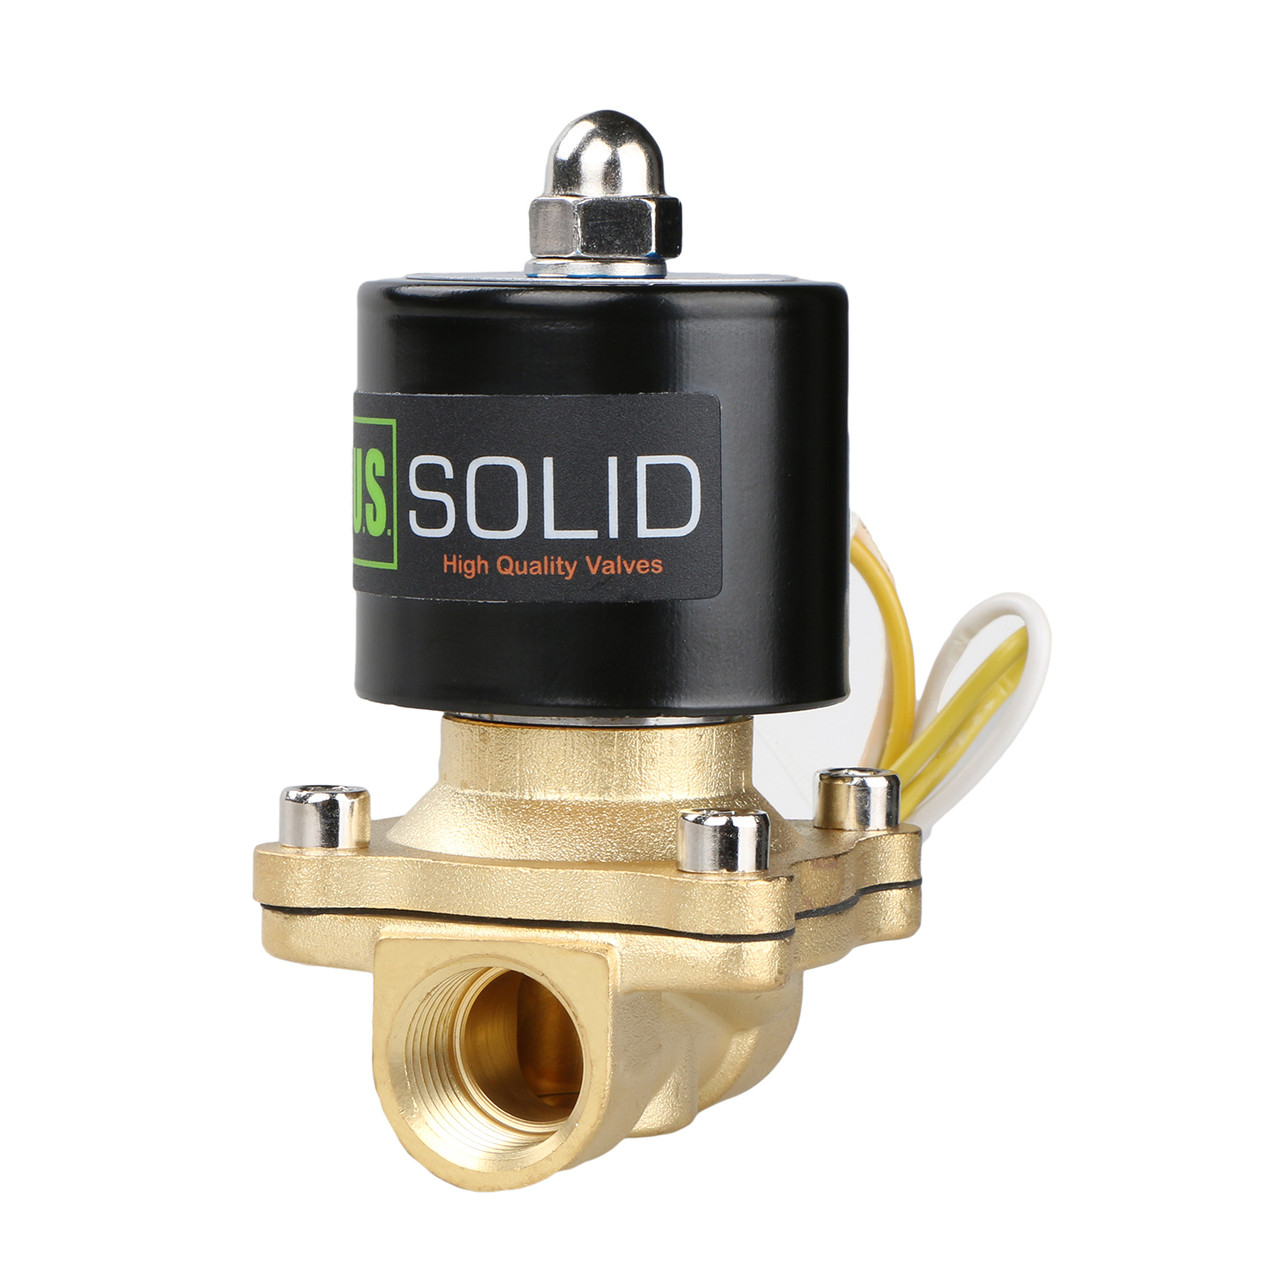 "USSOLID Electric Solenoid Valve- 1/2"" 110V AC Solenoid Valve Brass Body Normally Closed, VITON SEAL"